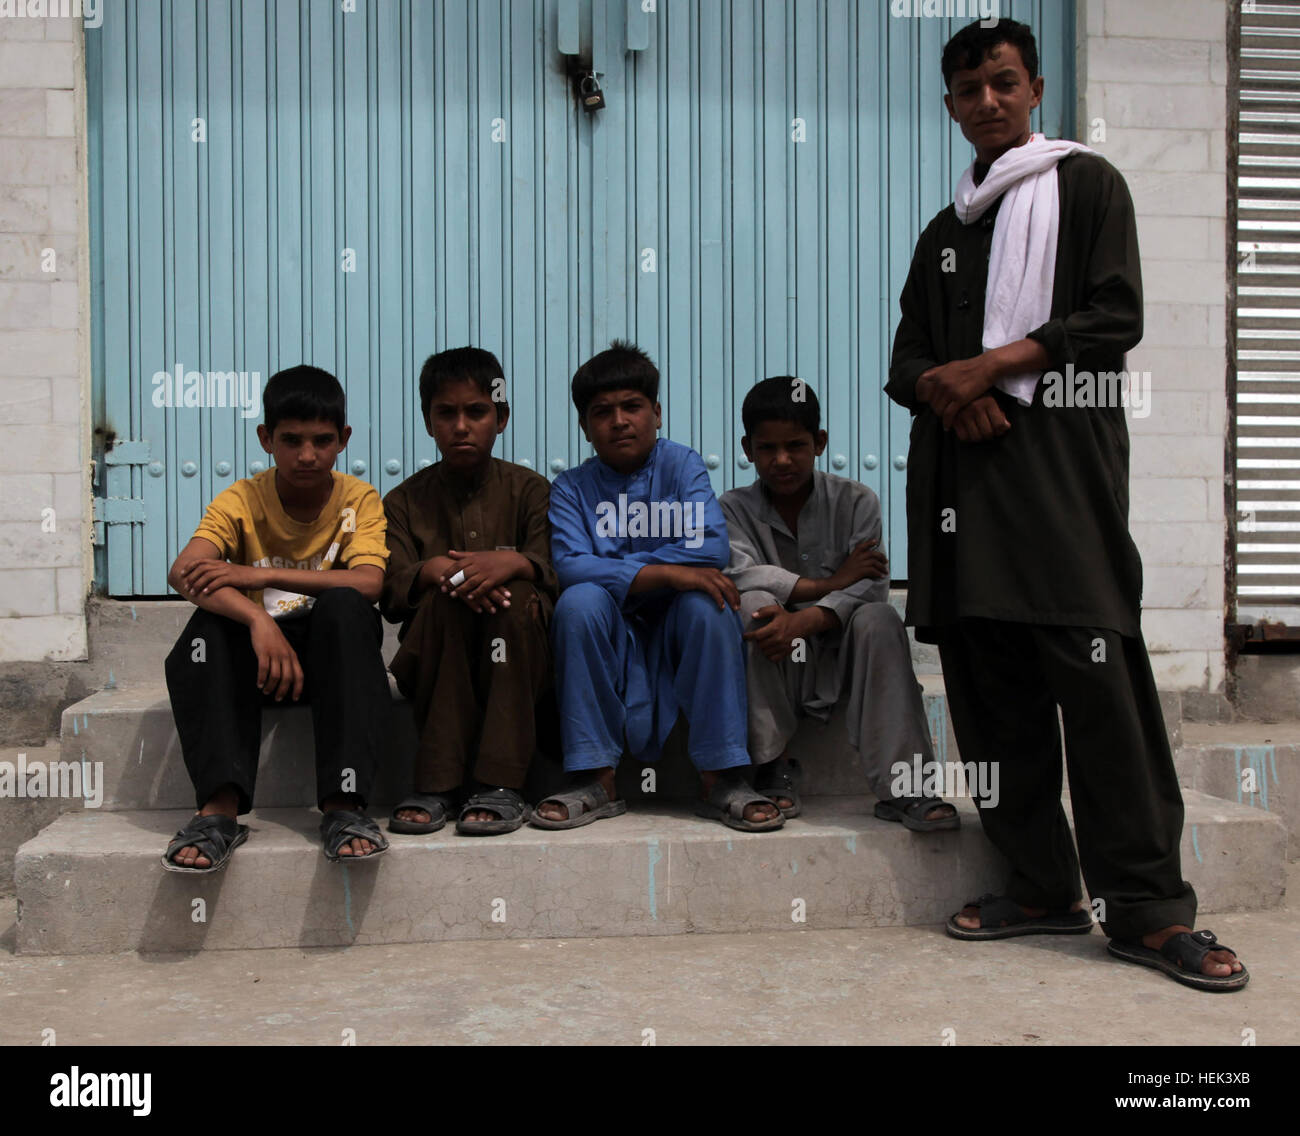 Local Afghanistan boys hang out in front of an abandoned building in downtown Jalalabad, Afghanistan, June 7. PRT - Stock Image